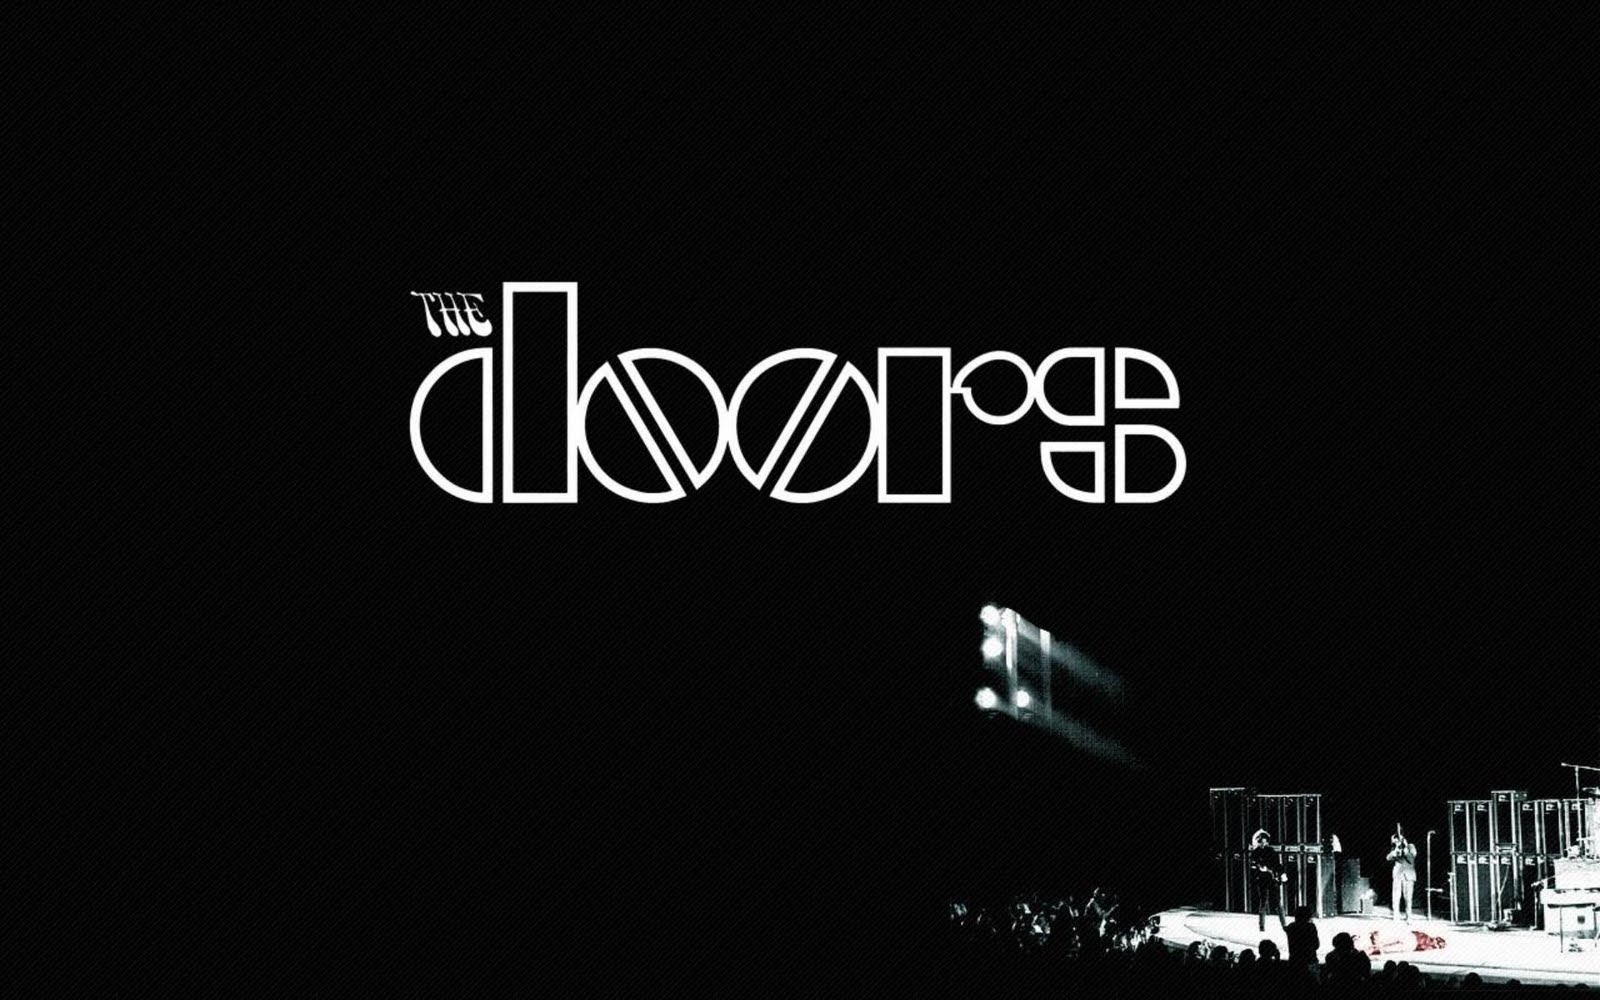 the doors images hd - photo #18